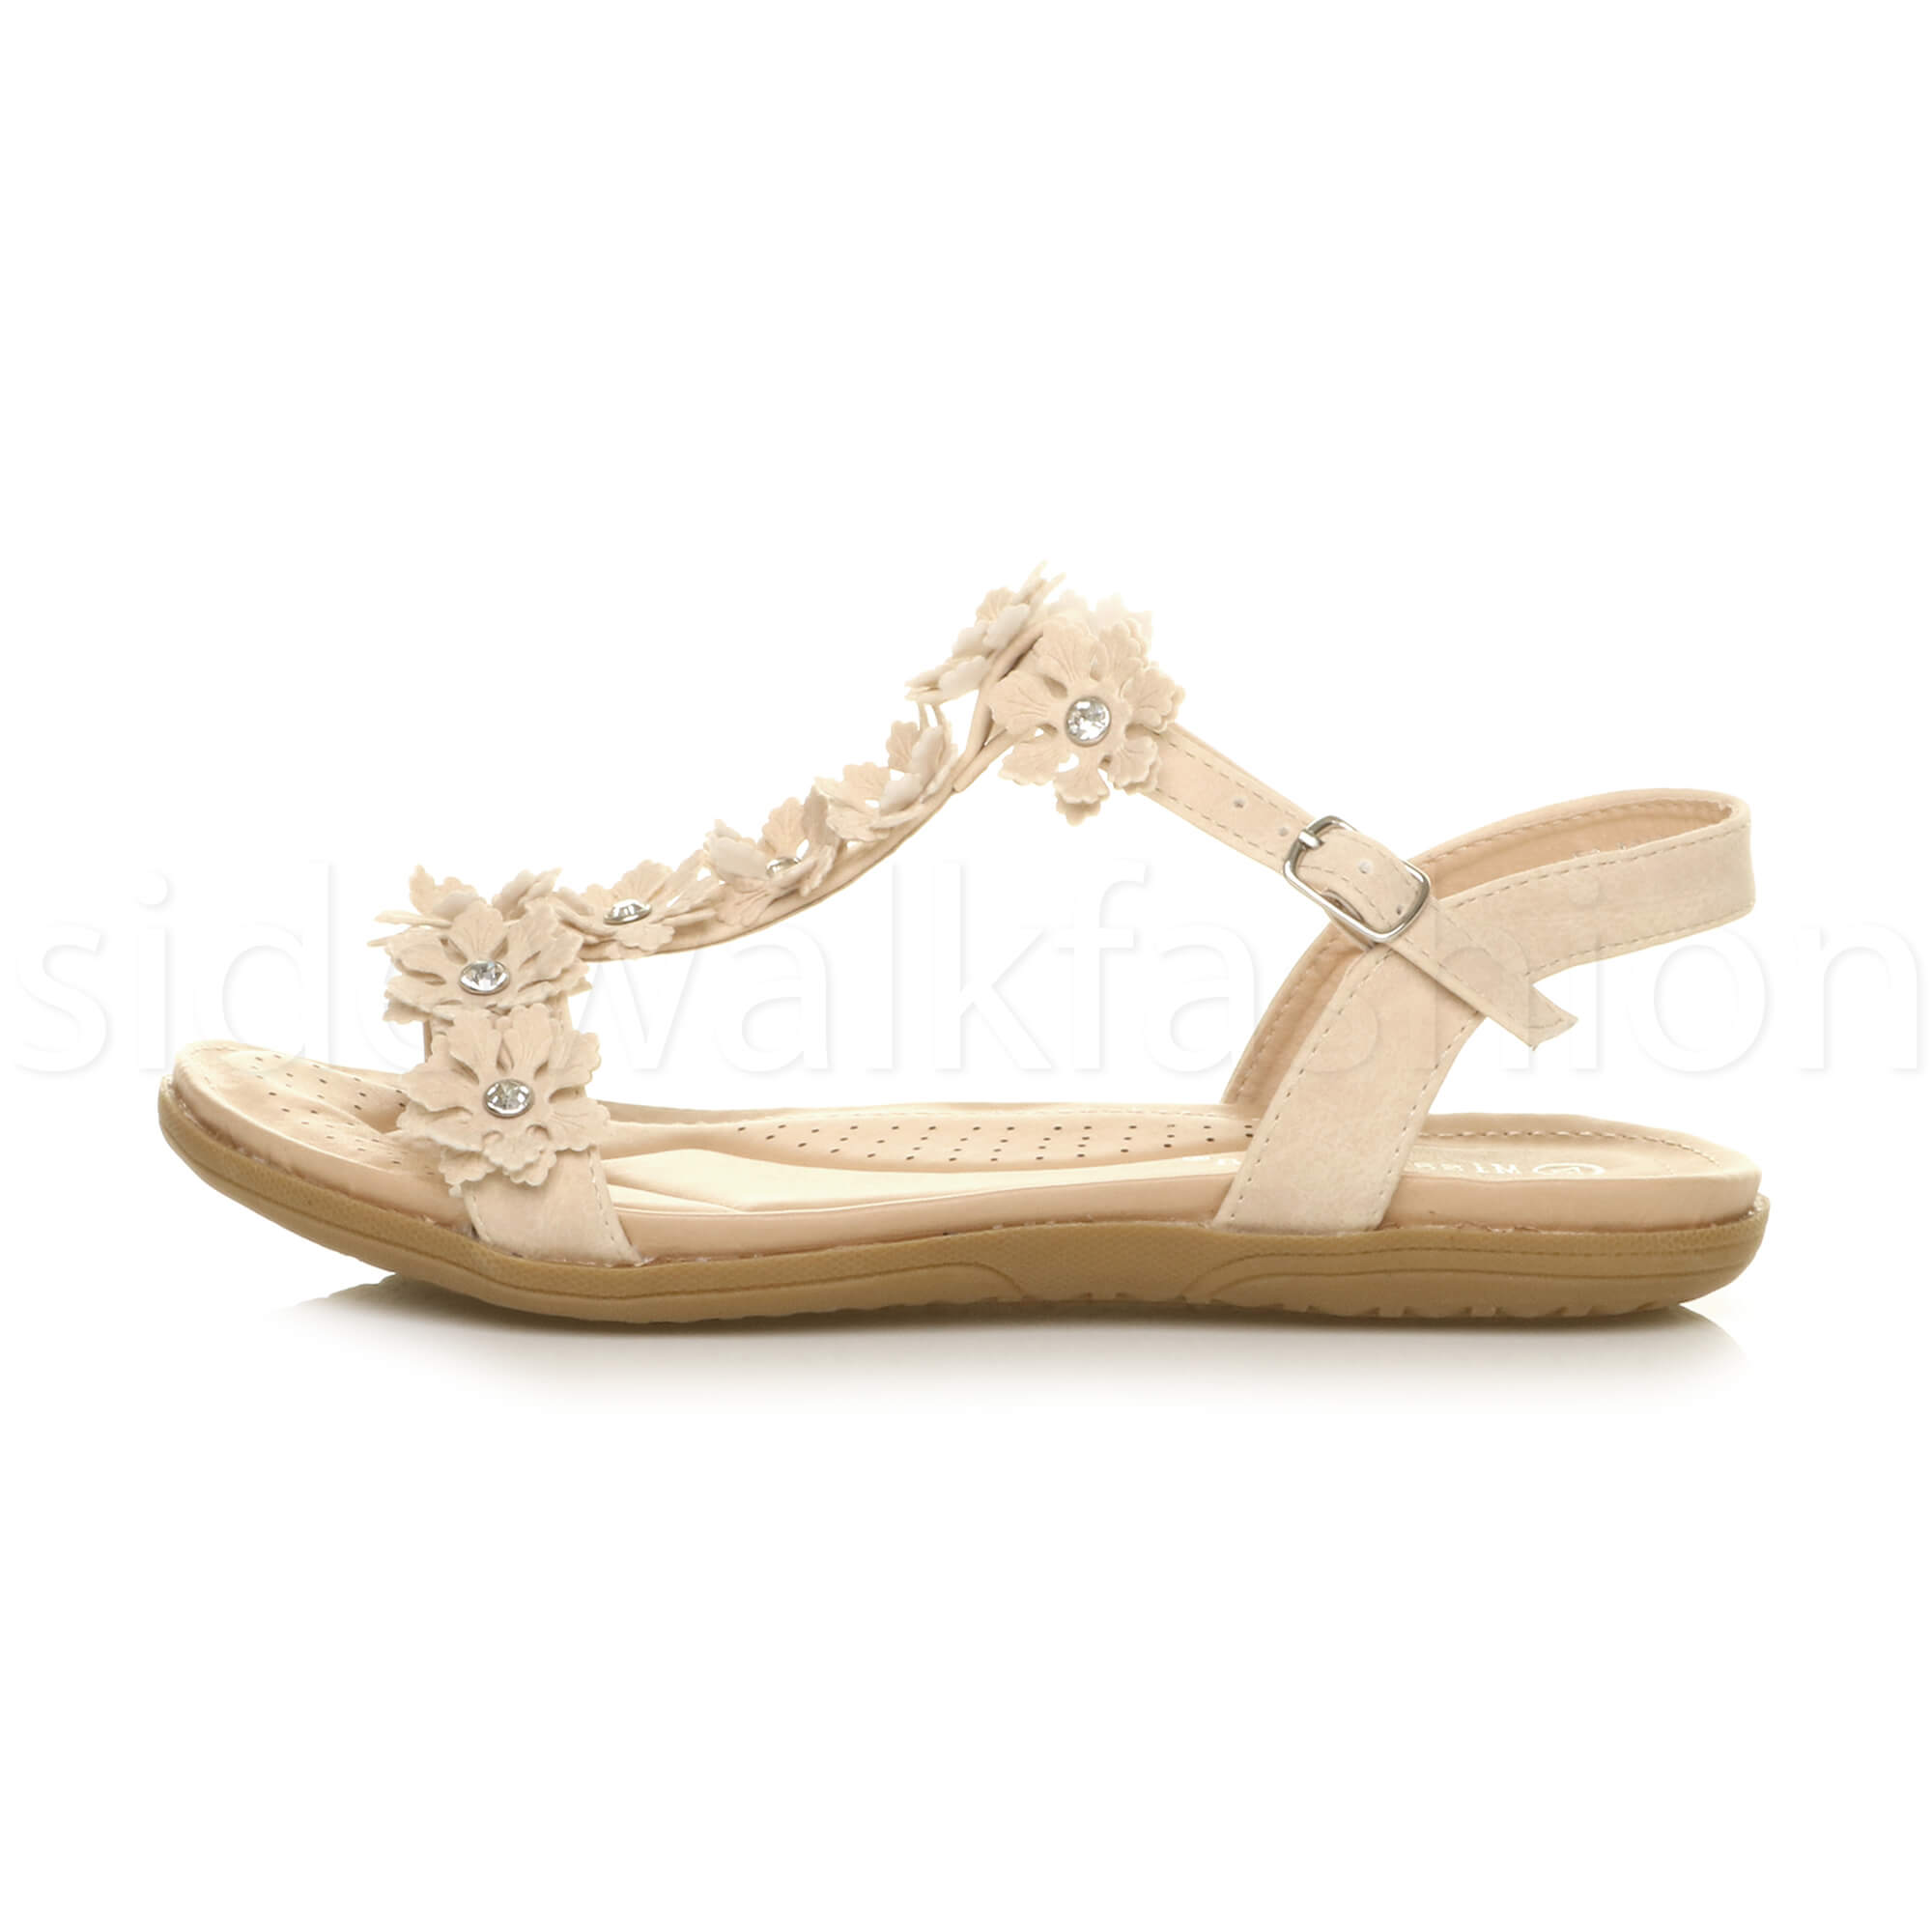 WOMENS LADIES FLAT LOW GRIP DIAMANTE SLING BACK SUMMER SANDALS SIZE CUSHIONED